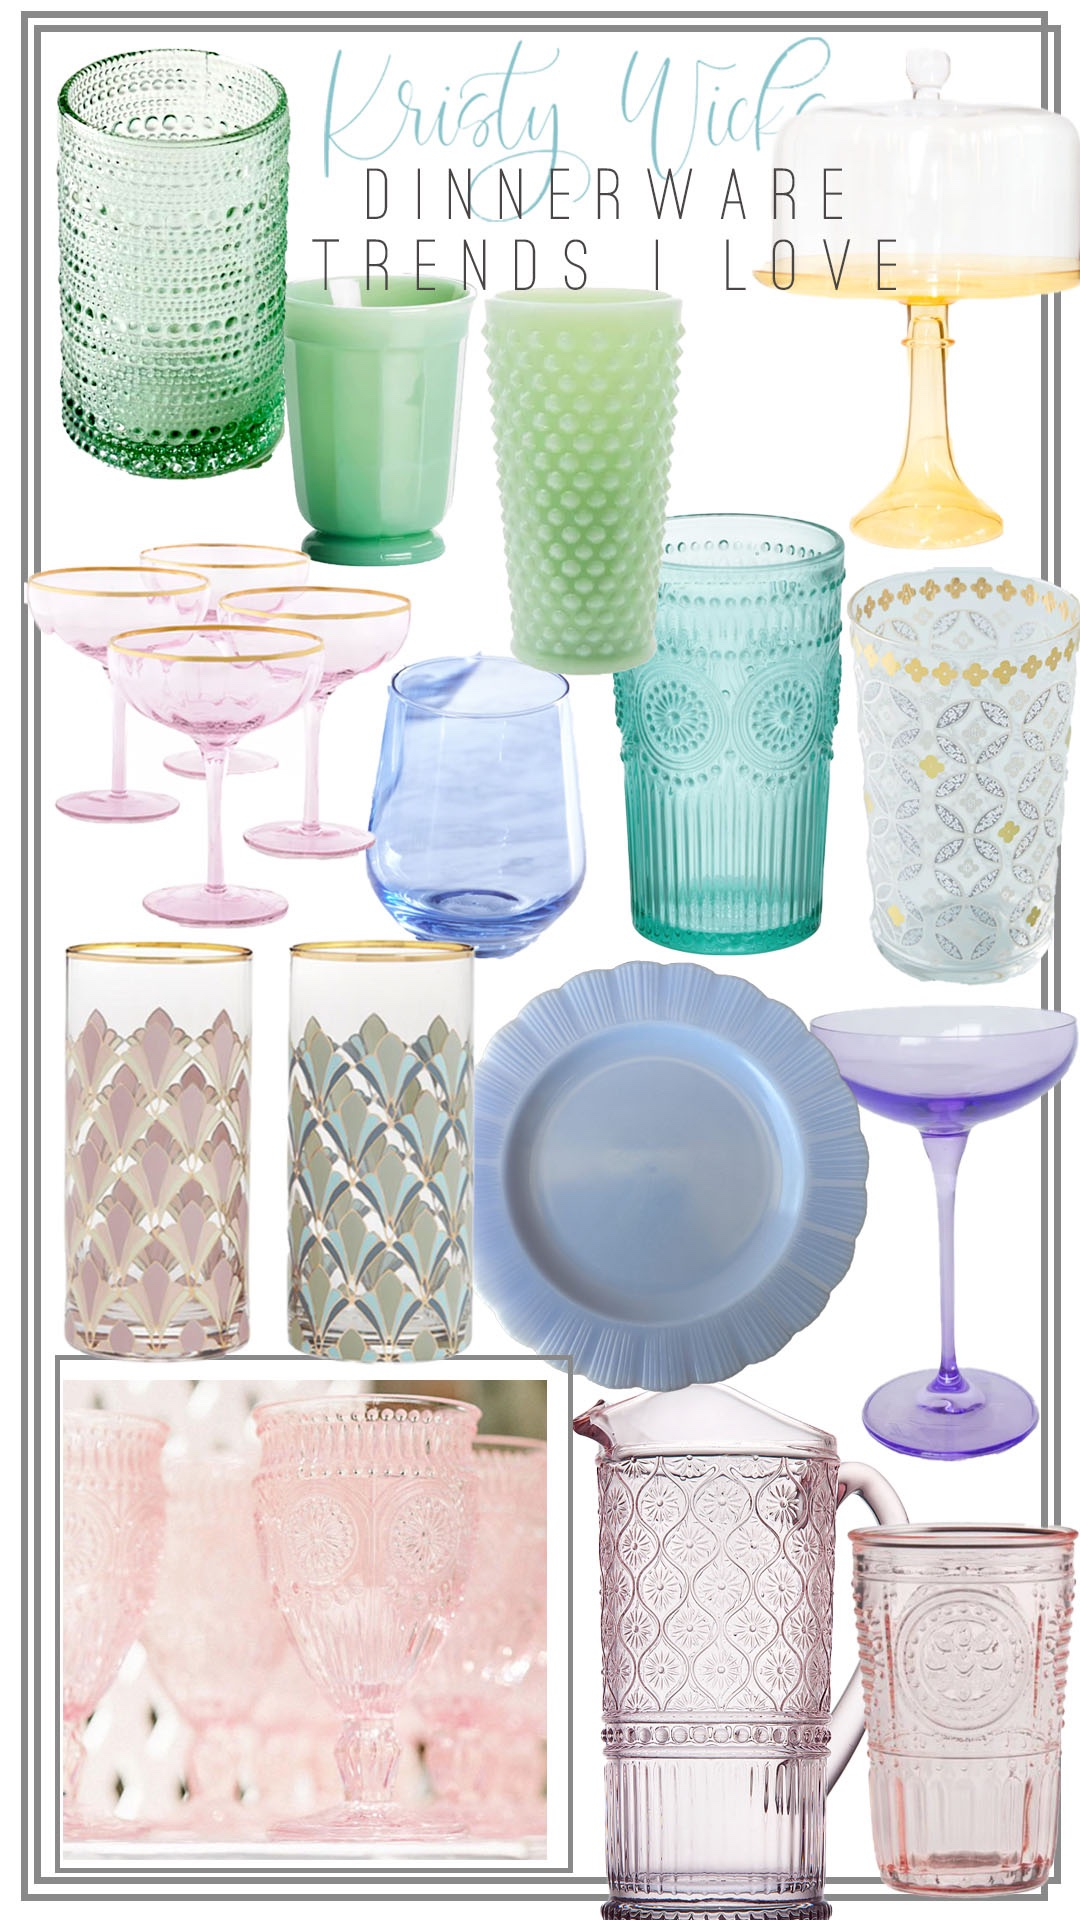 Collage of Dinnerware and Glassware including Milk Glass, Hobnail, Depression Glass, and Art Deco pieces